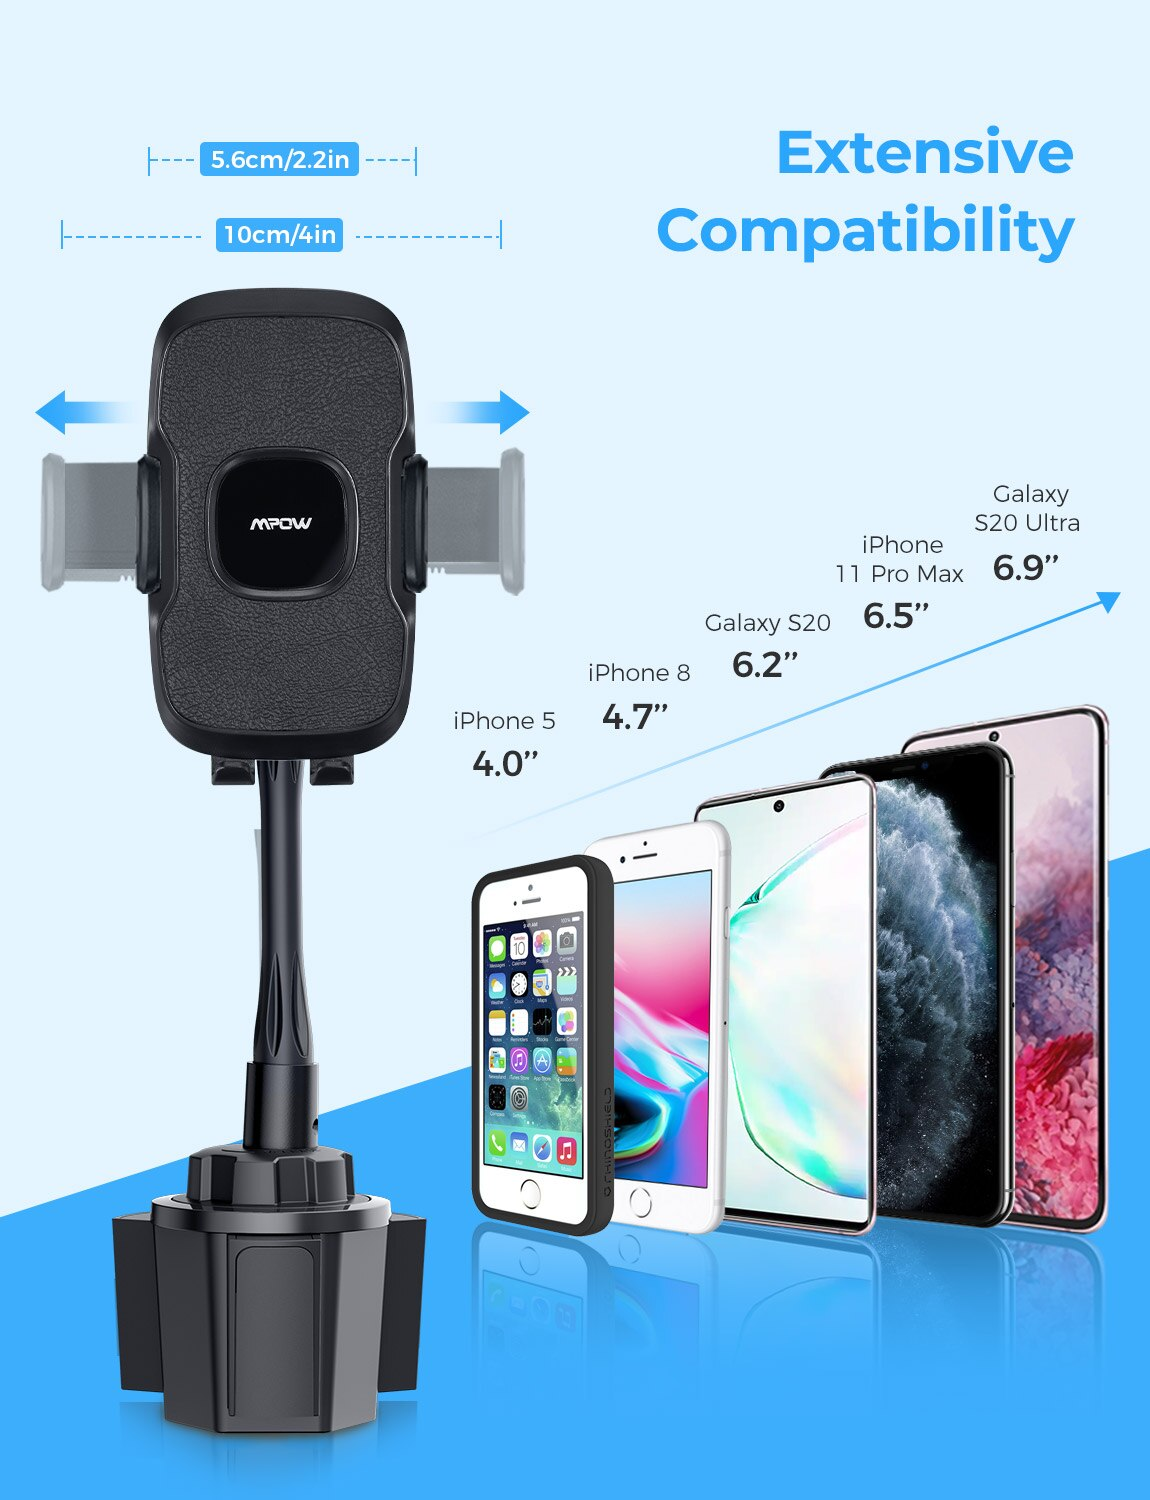 Hda19b828abb74490936293d1a7c12b68B - MPOW CA136 Cup Phone Holder for Car One-Hand Operation Phone Cradle Mount Flexible Long Arm Adjustable Clamp for iPhone Galaxy